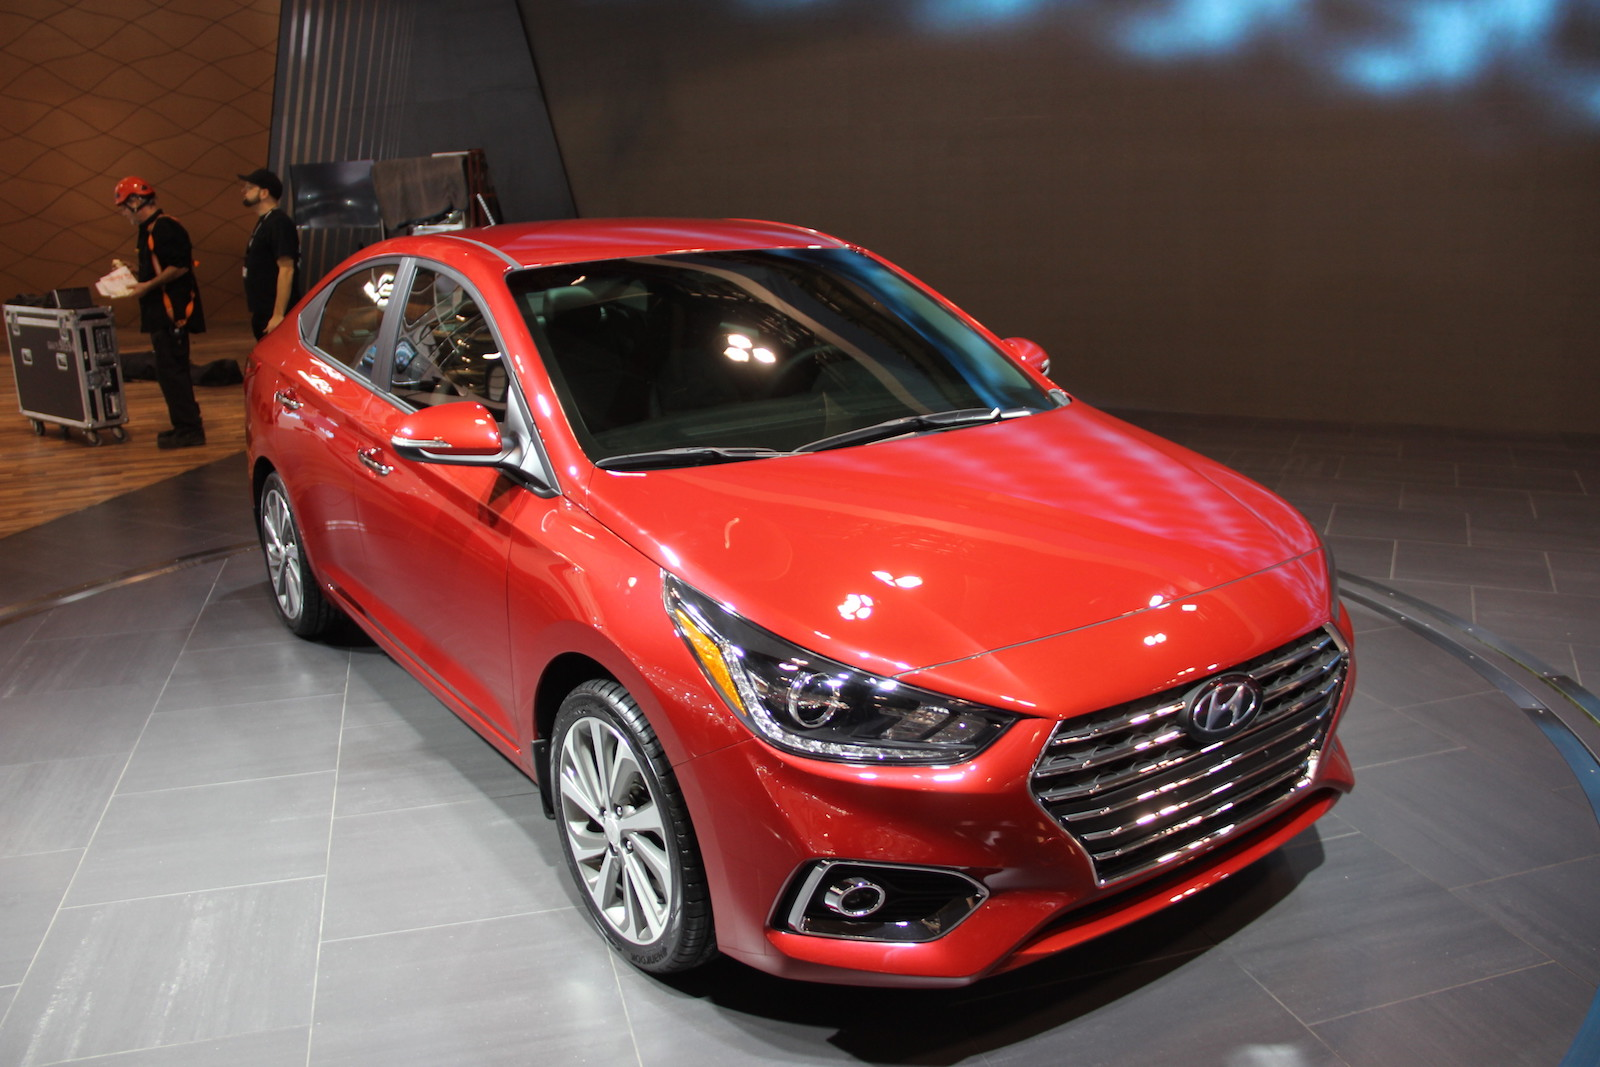 2018 Hyundai Accent Preview >> Hyundai Accent 2018 Hatchback | Best new cars for 2018